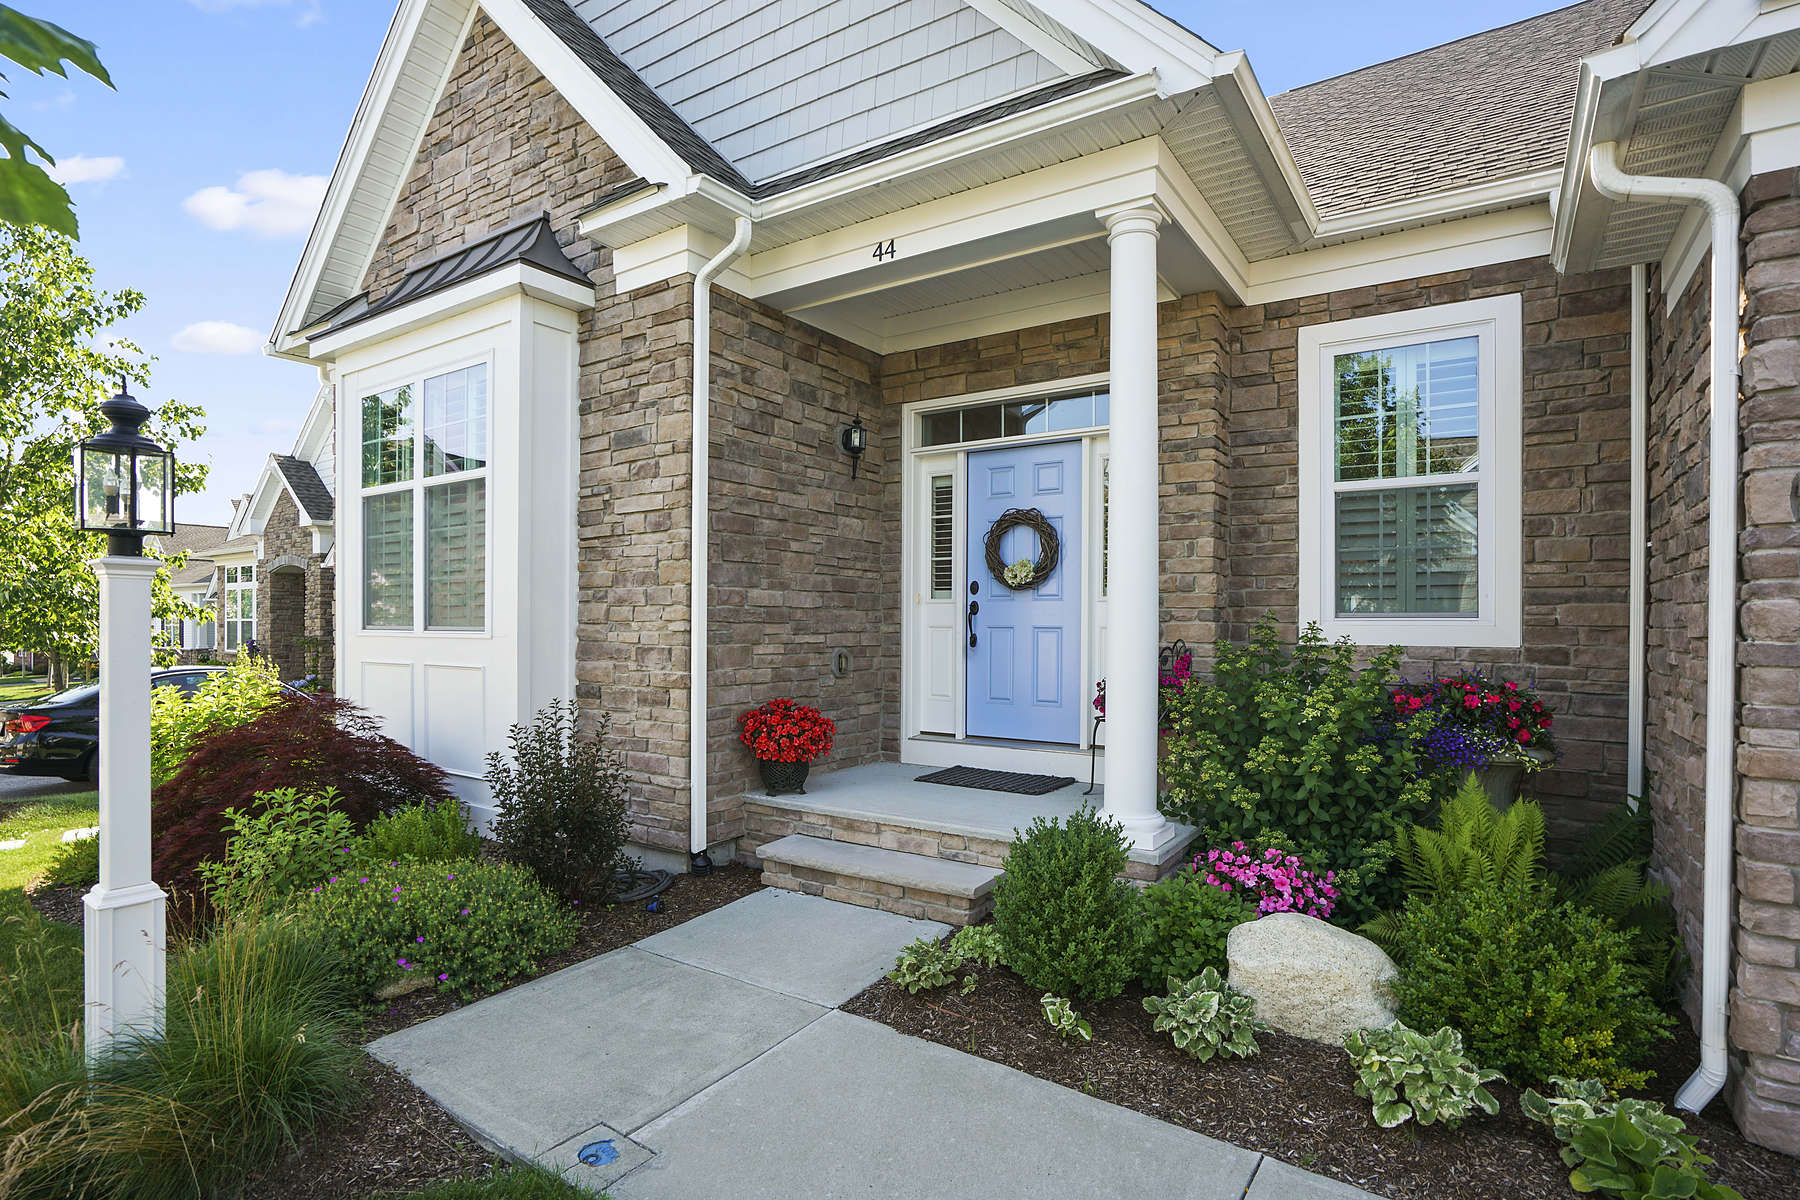 Single Family Homes for Sale at 44 Skipping Stone Plymouth, Massachusetts 02360 United States